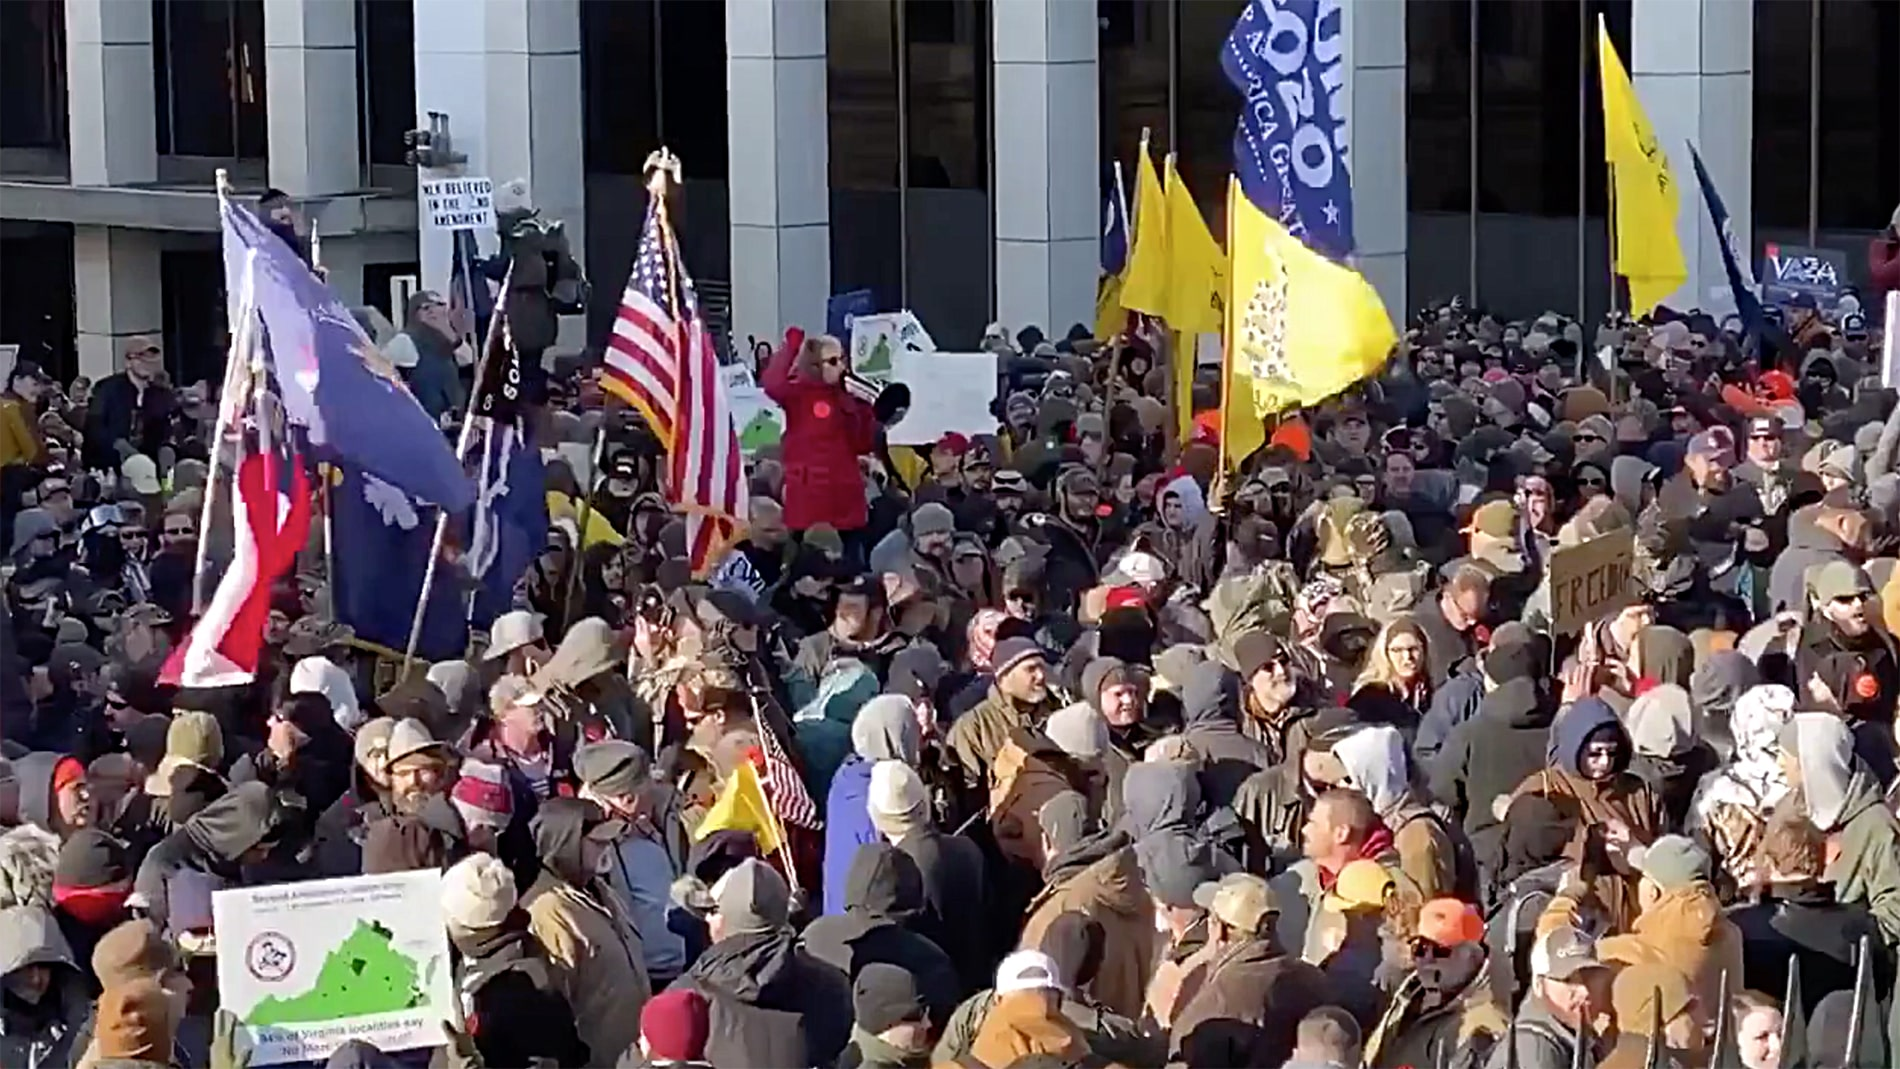 Reporter says VA gun advocates chanted 'we will not comply' in video reciting Pledge of Allegiance